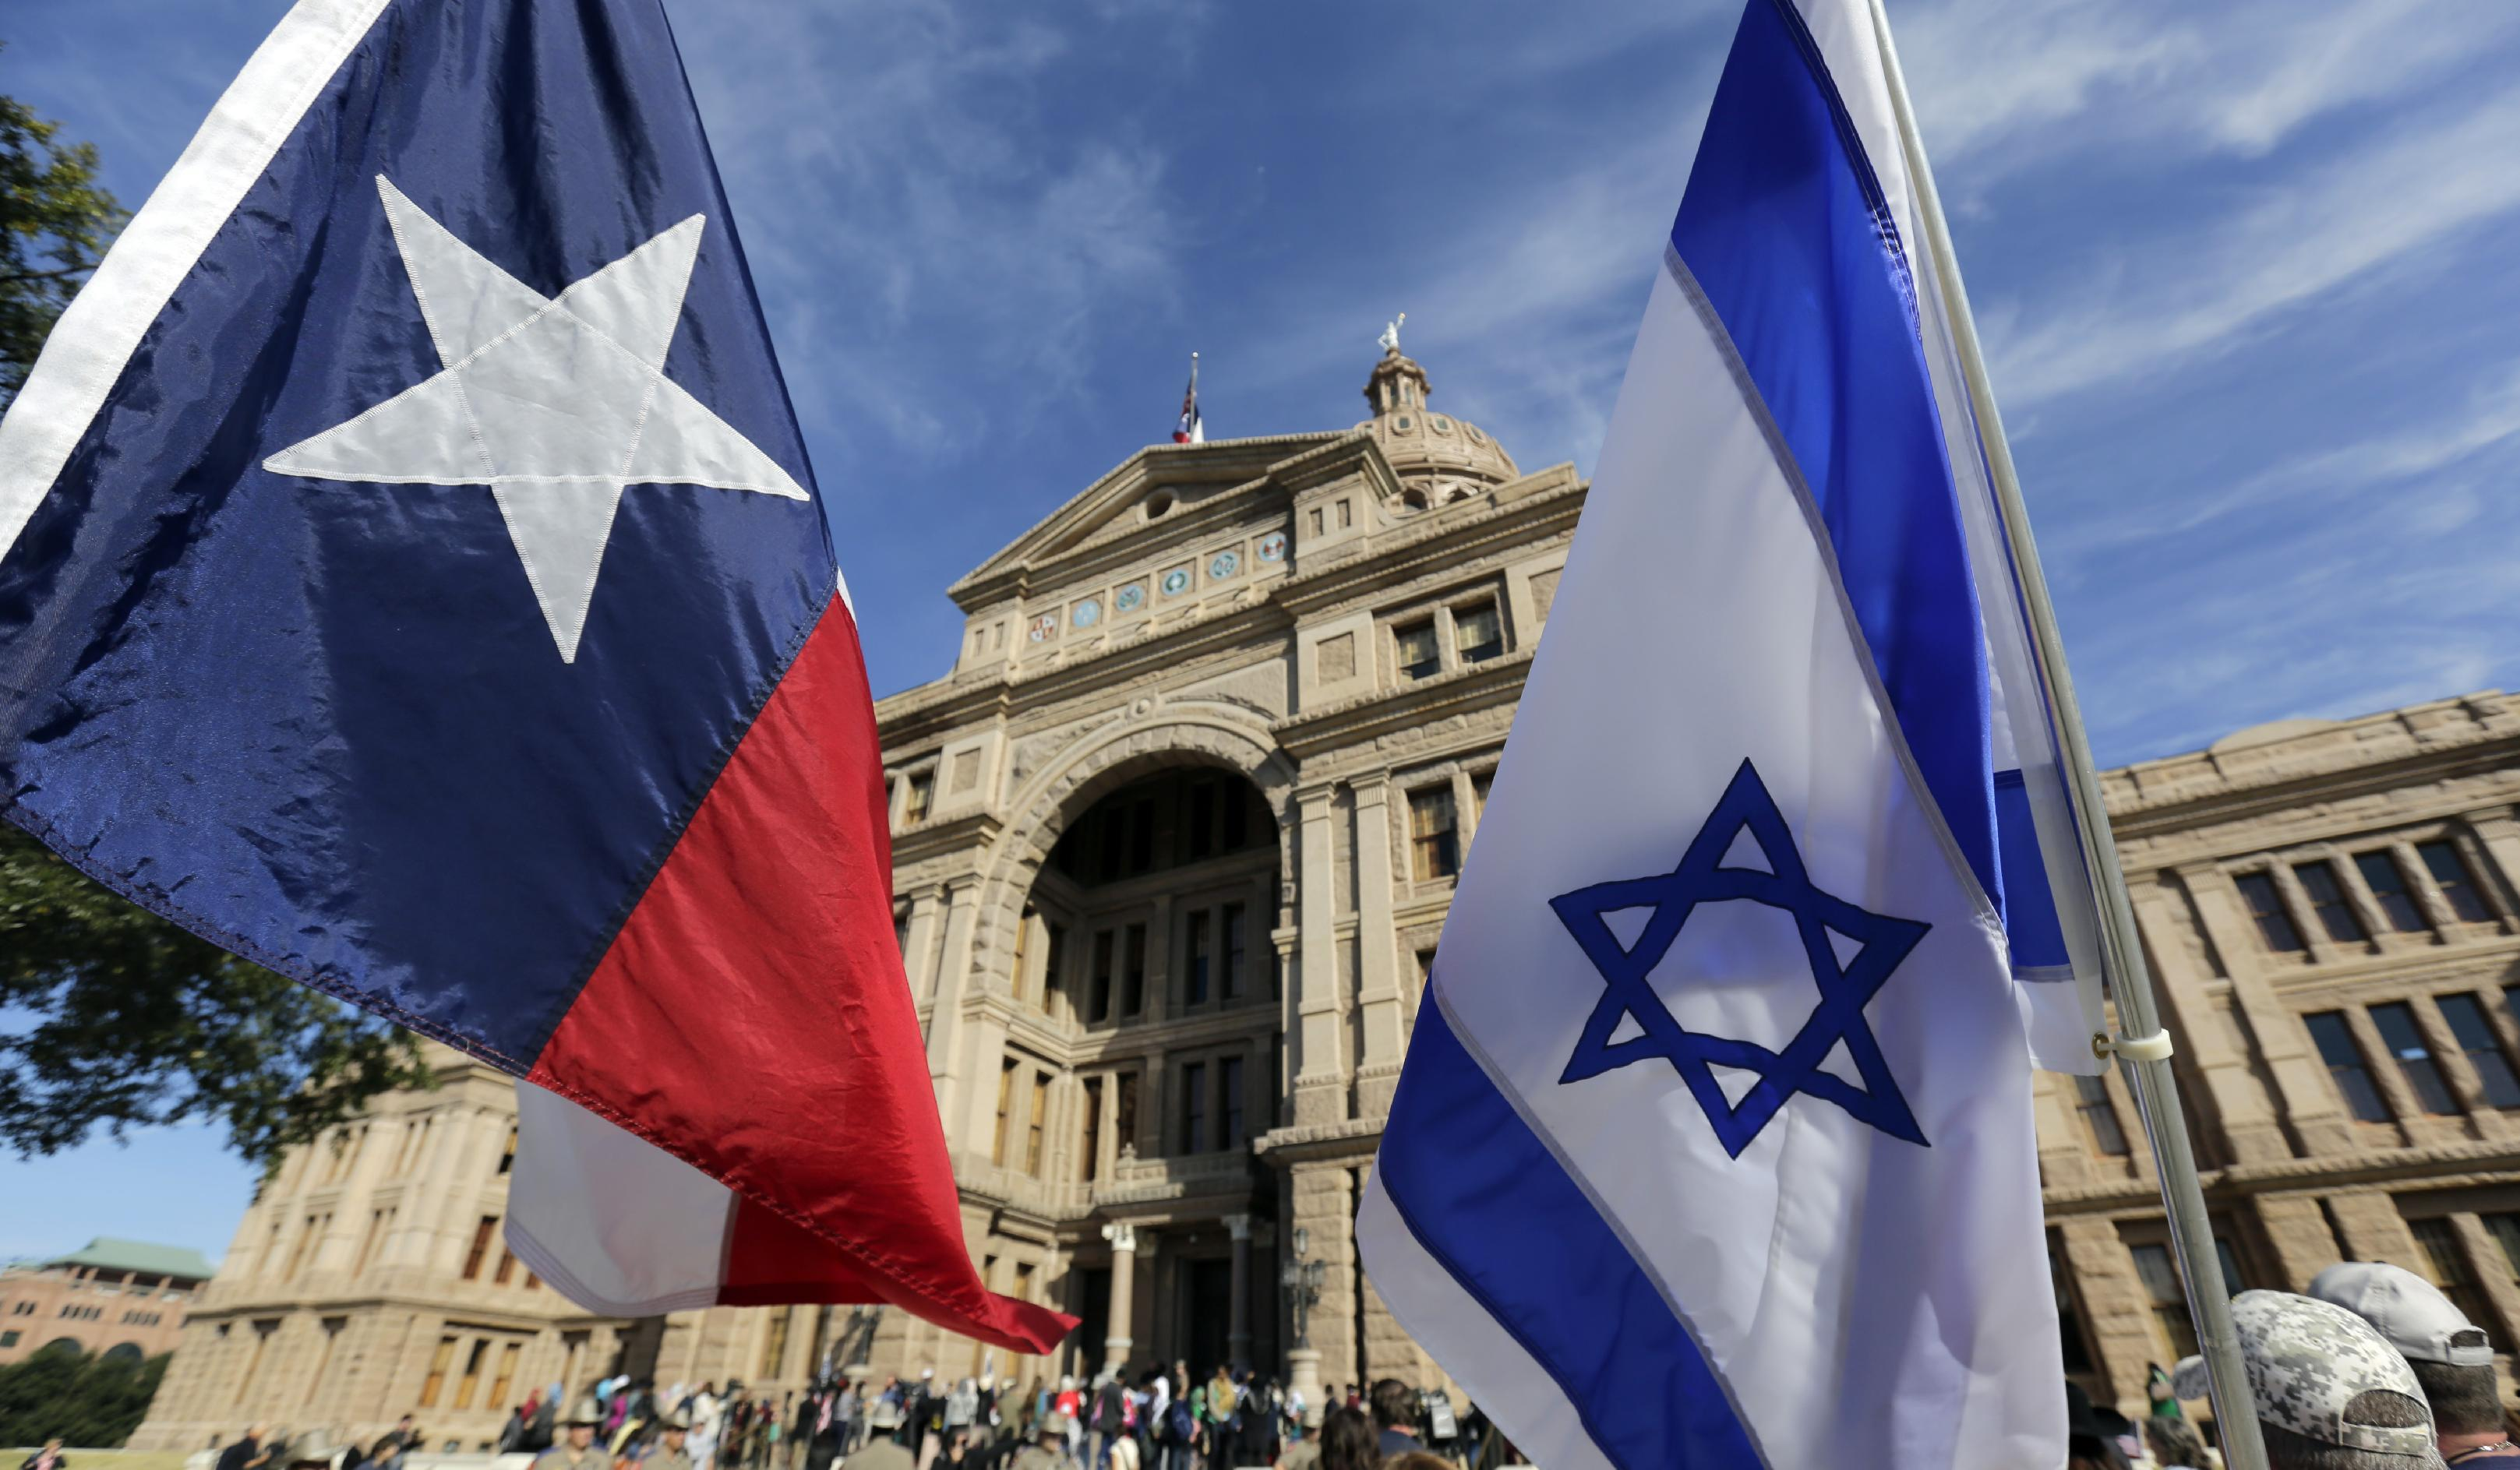 Texas lawmaker under fire for Facebook post on Muslim Capitol Day